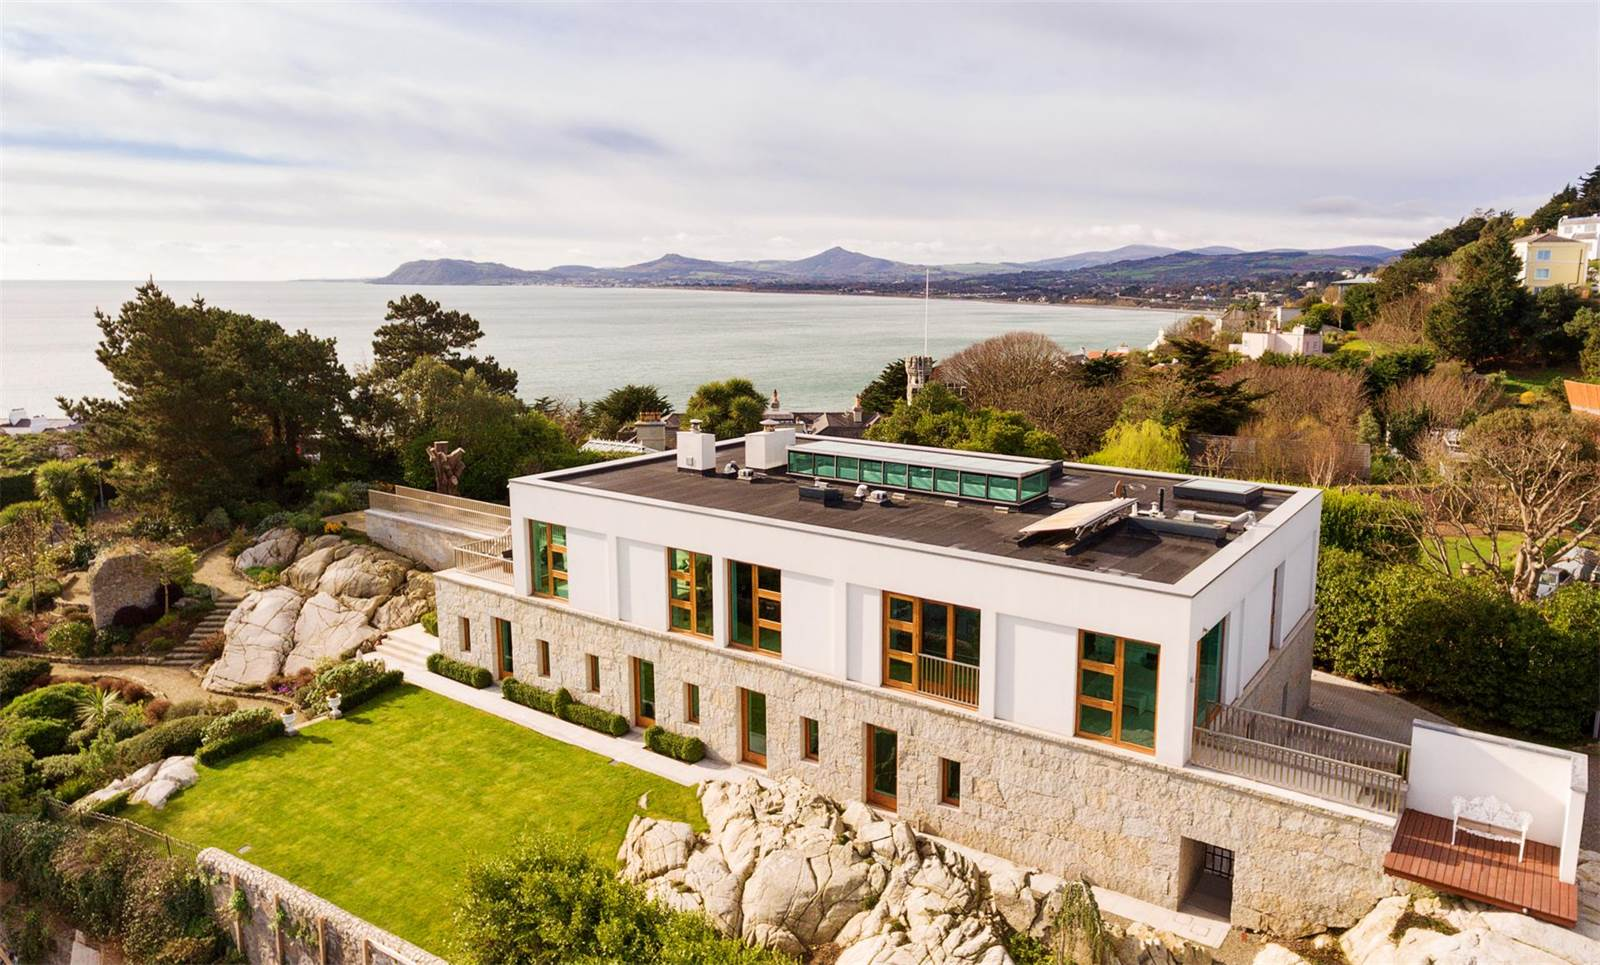 This contemporary estate is positioned on the finest site in Dalkey, overlooking Dublin Bay, Killiney Bay, Dalkey Island, Howth, and the Wicklow Mountains.